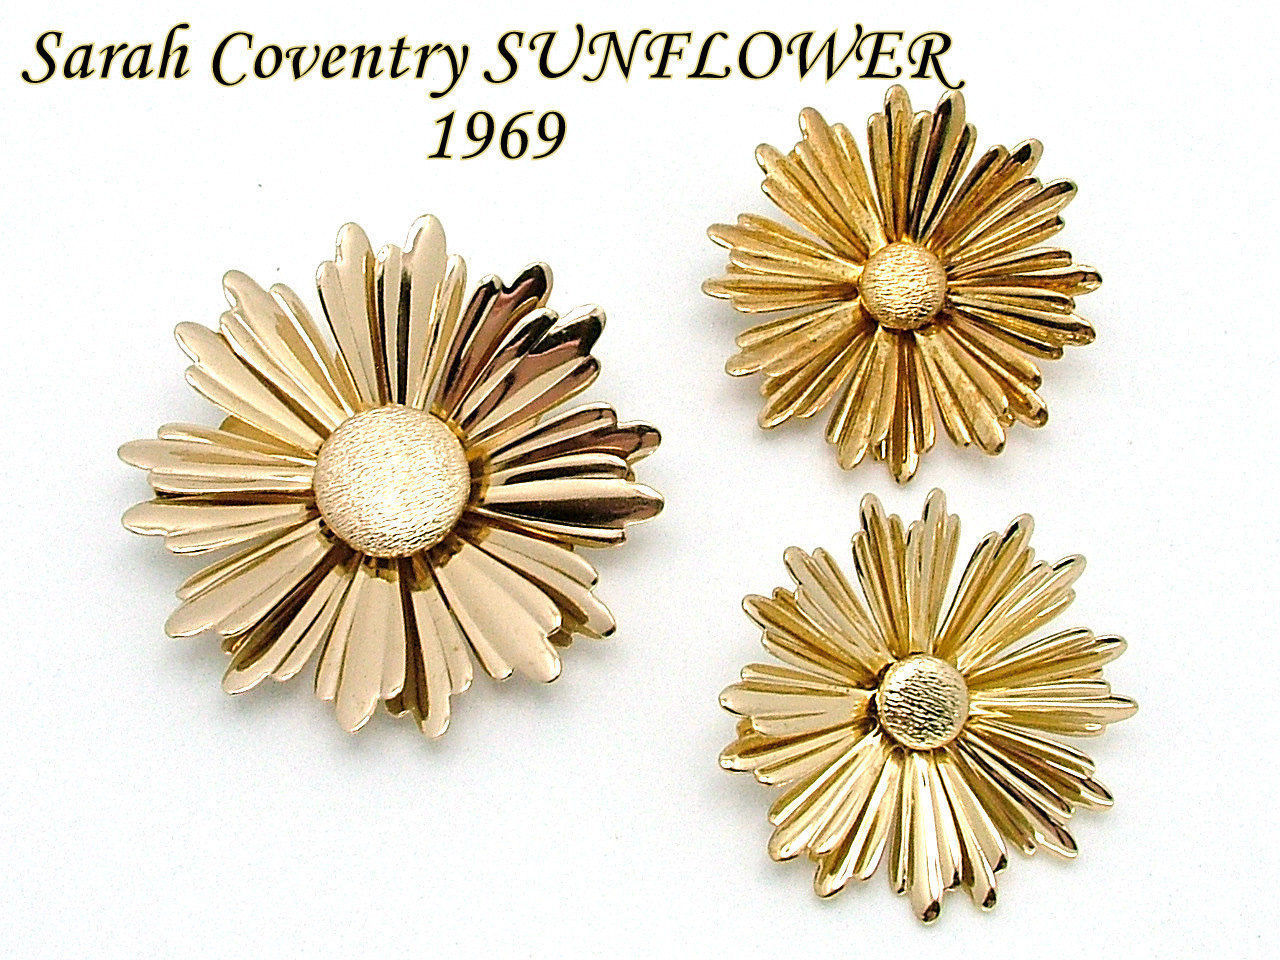 Sarah Coventry SUNFLOWER Brooch Earrings Set From 1969 Gold Tone